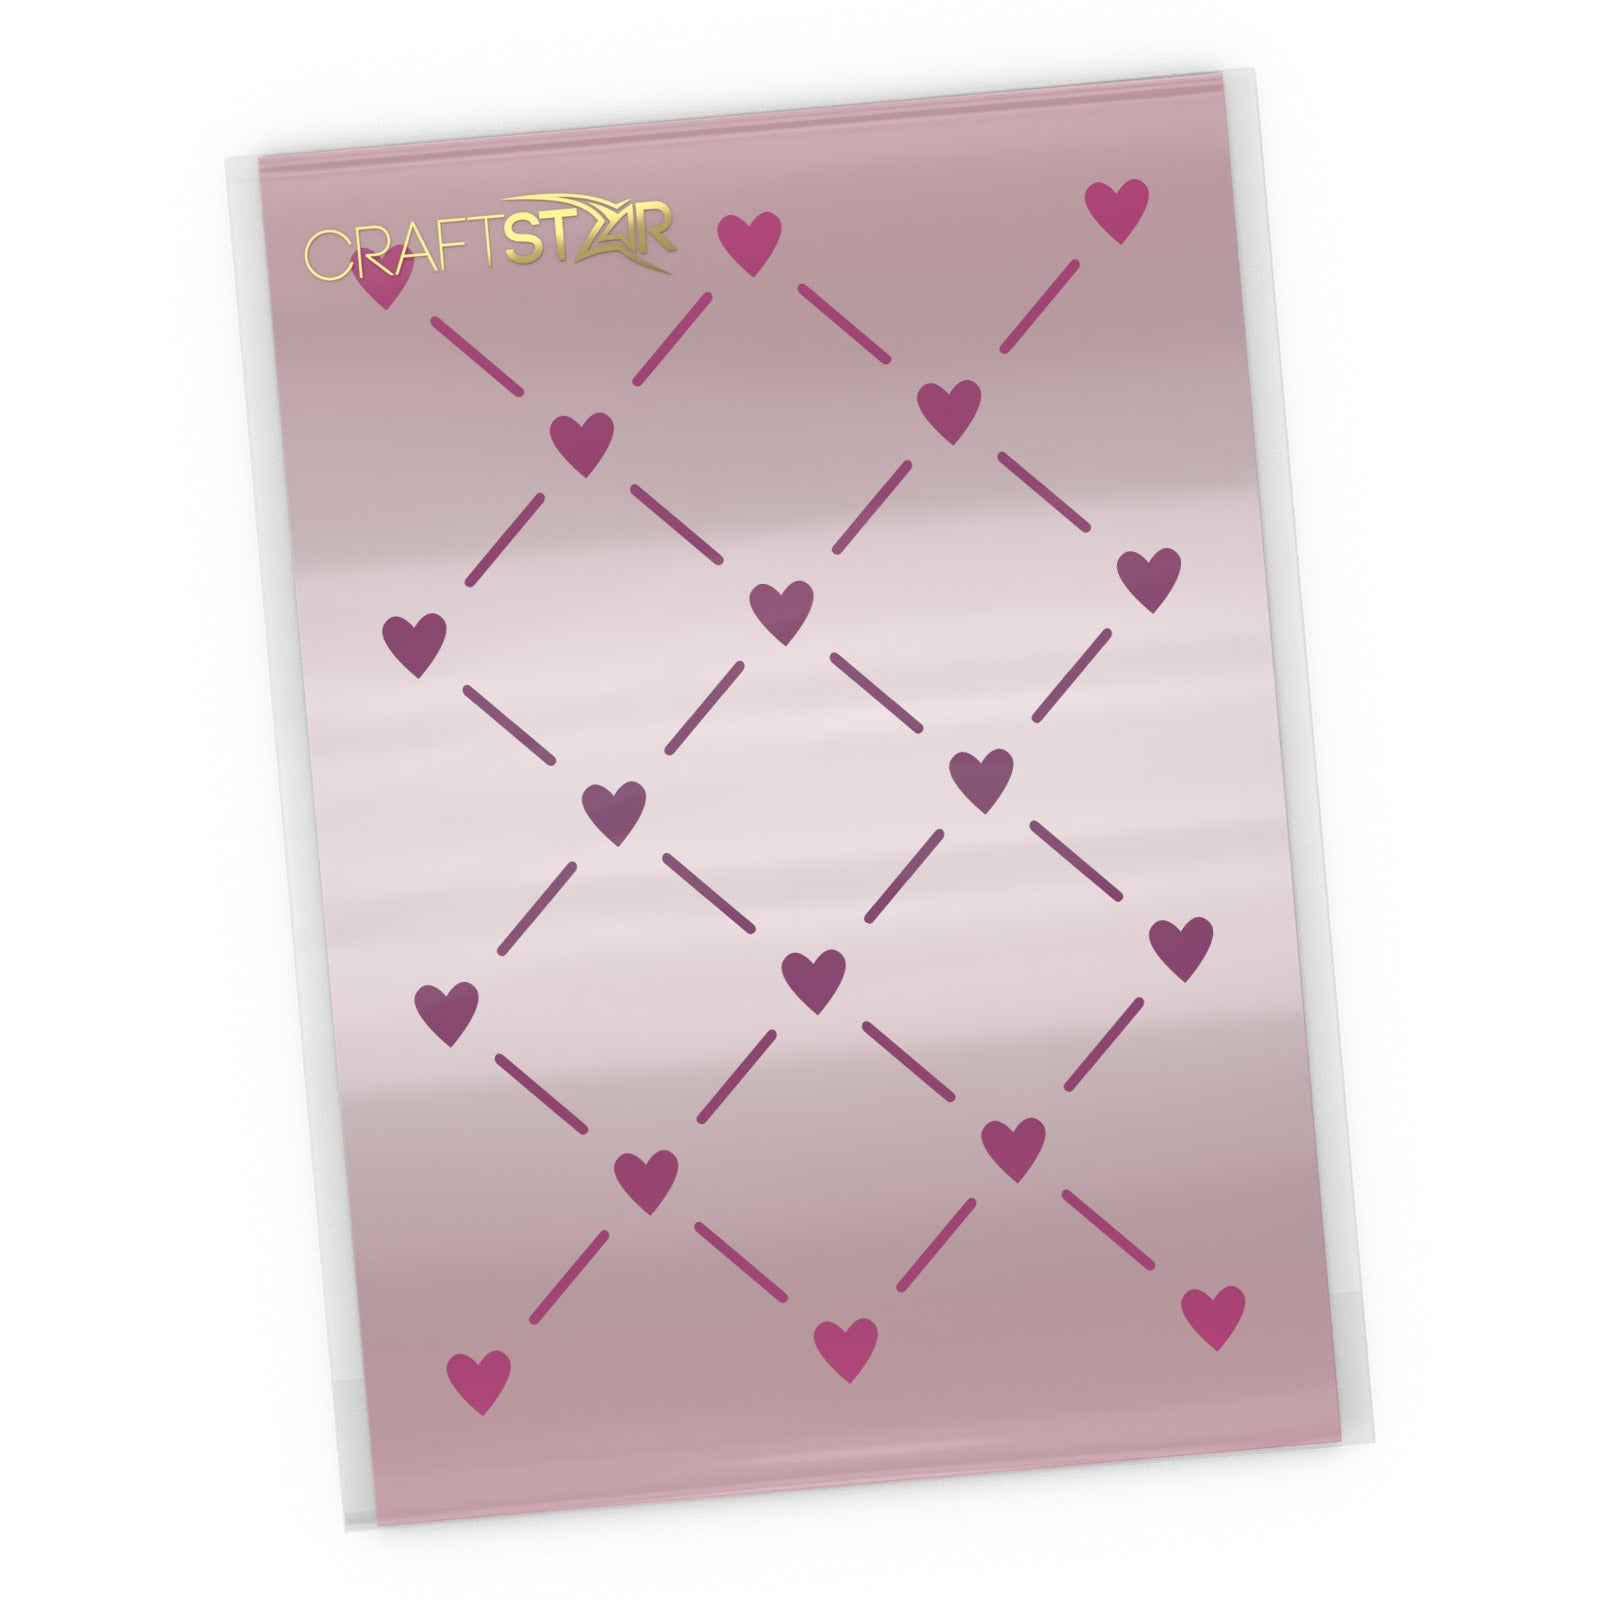 Hearts Lattice Stencil - Craft Seamless Mini Heart Pattern Template